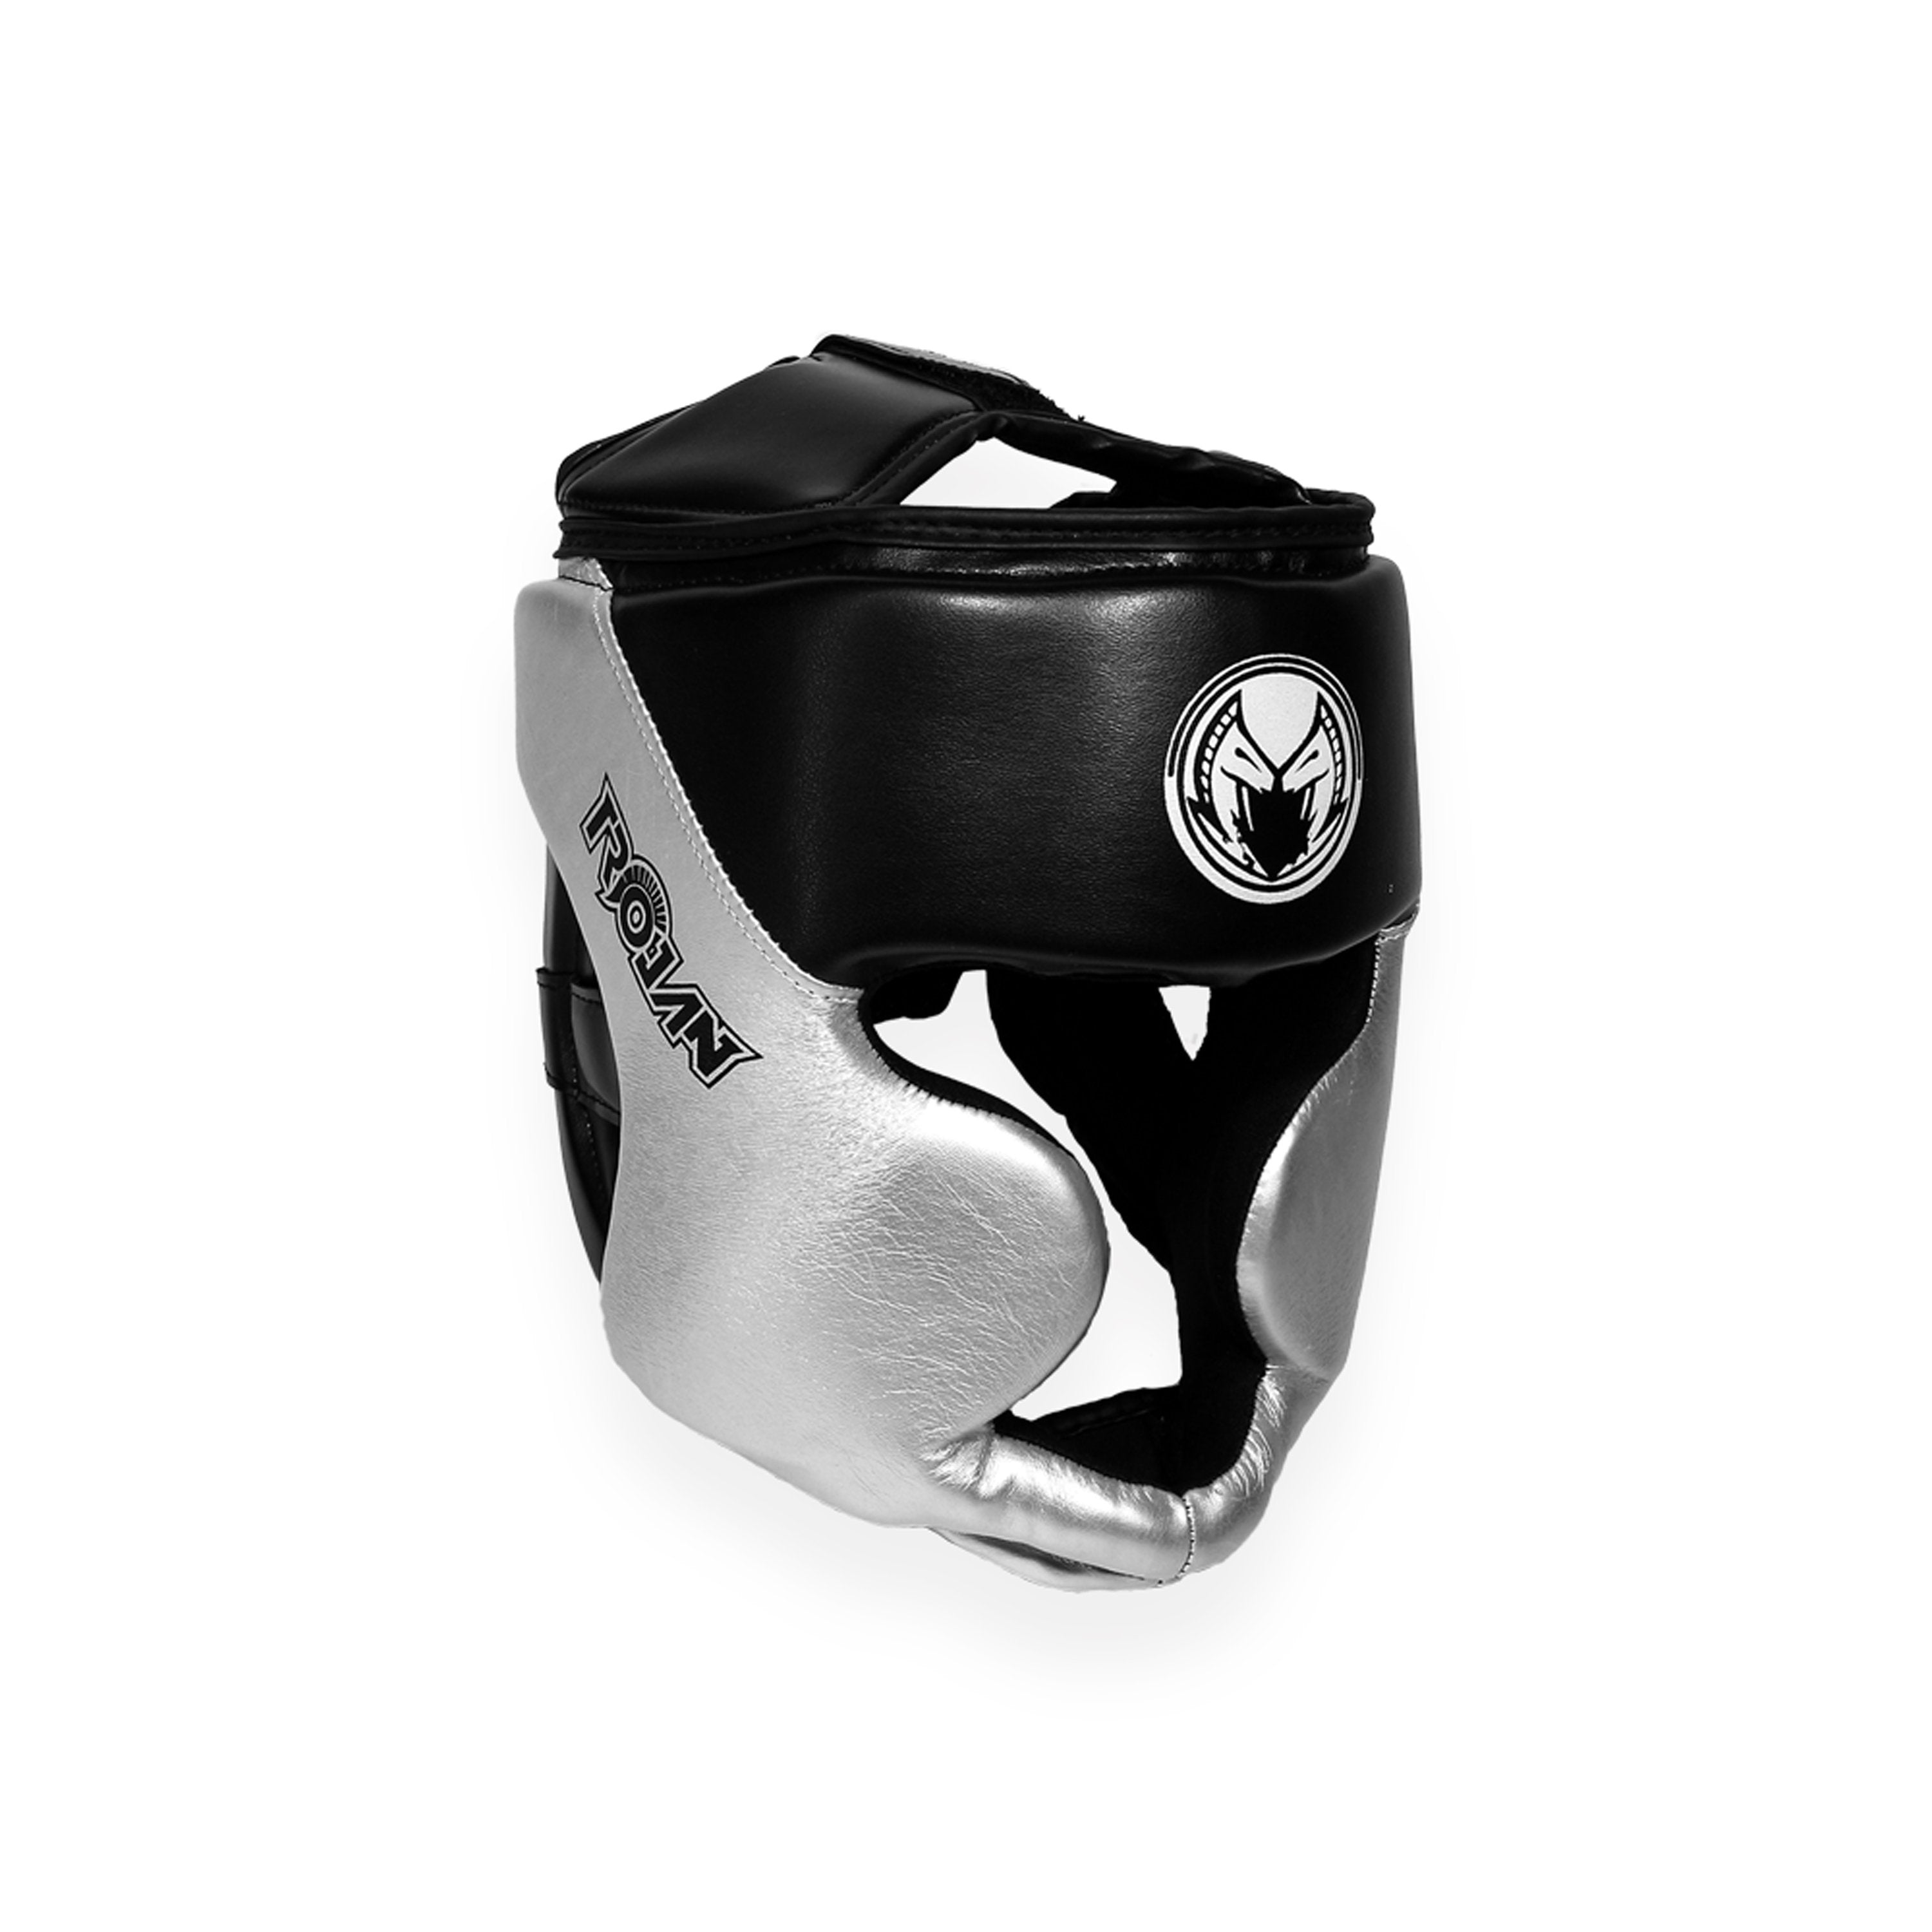 Copy of MEGES S | FULL PROTECTION HEADGEAR